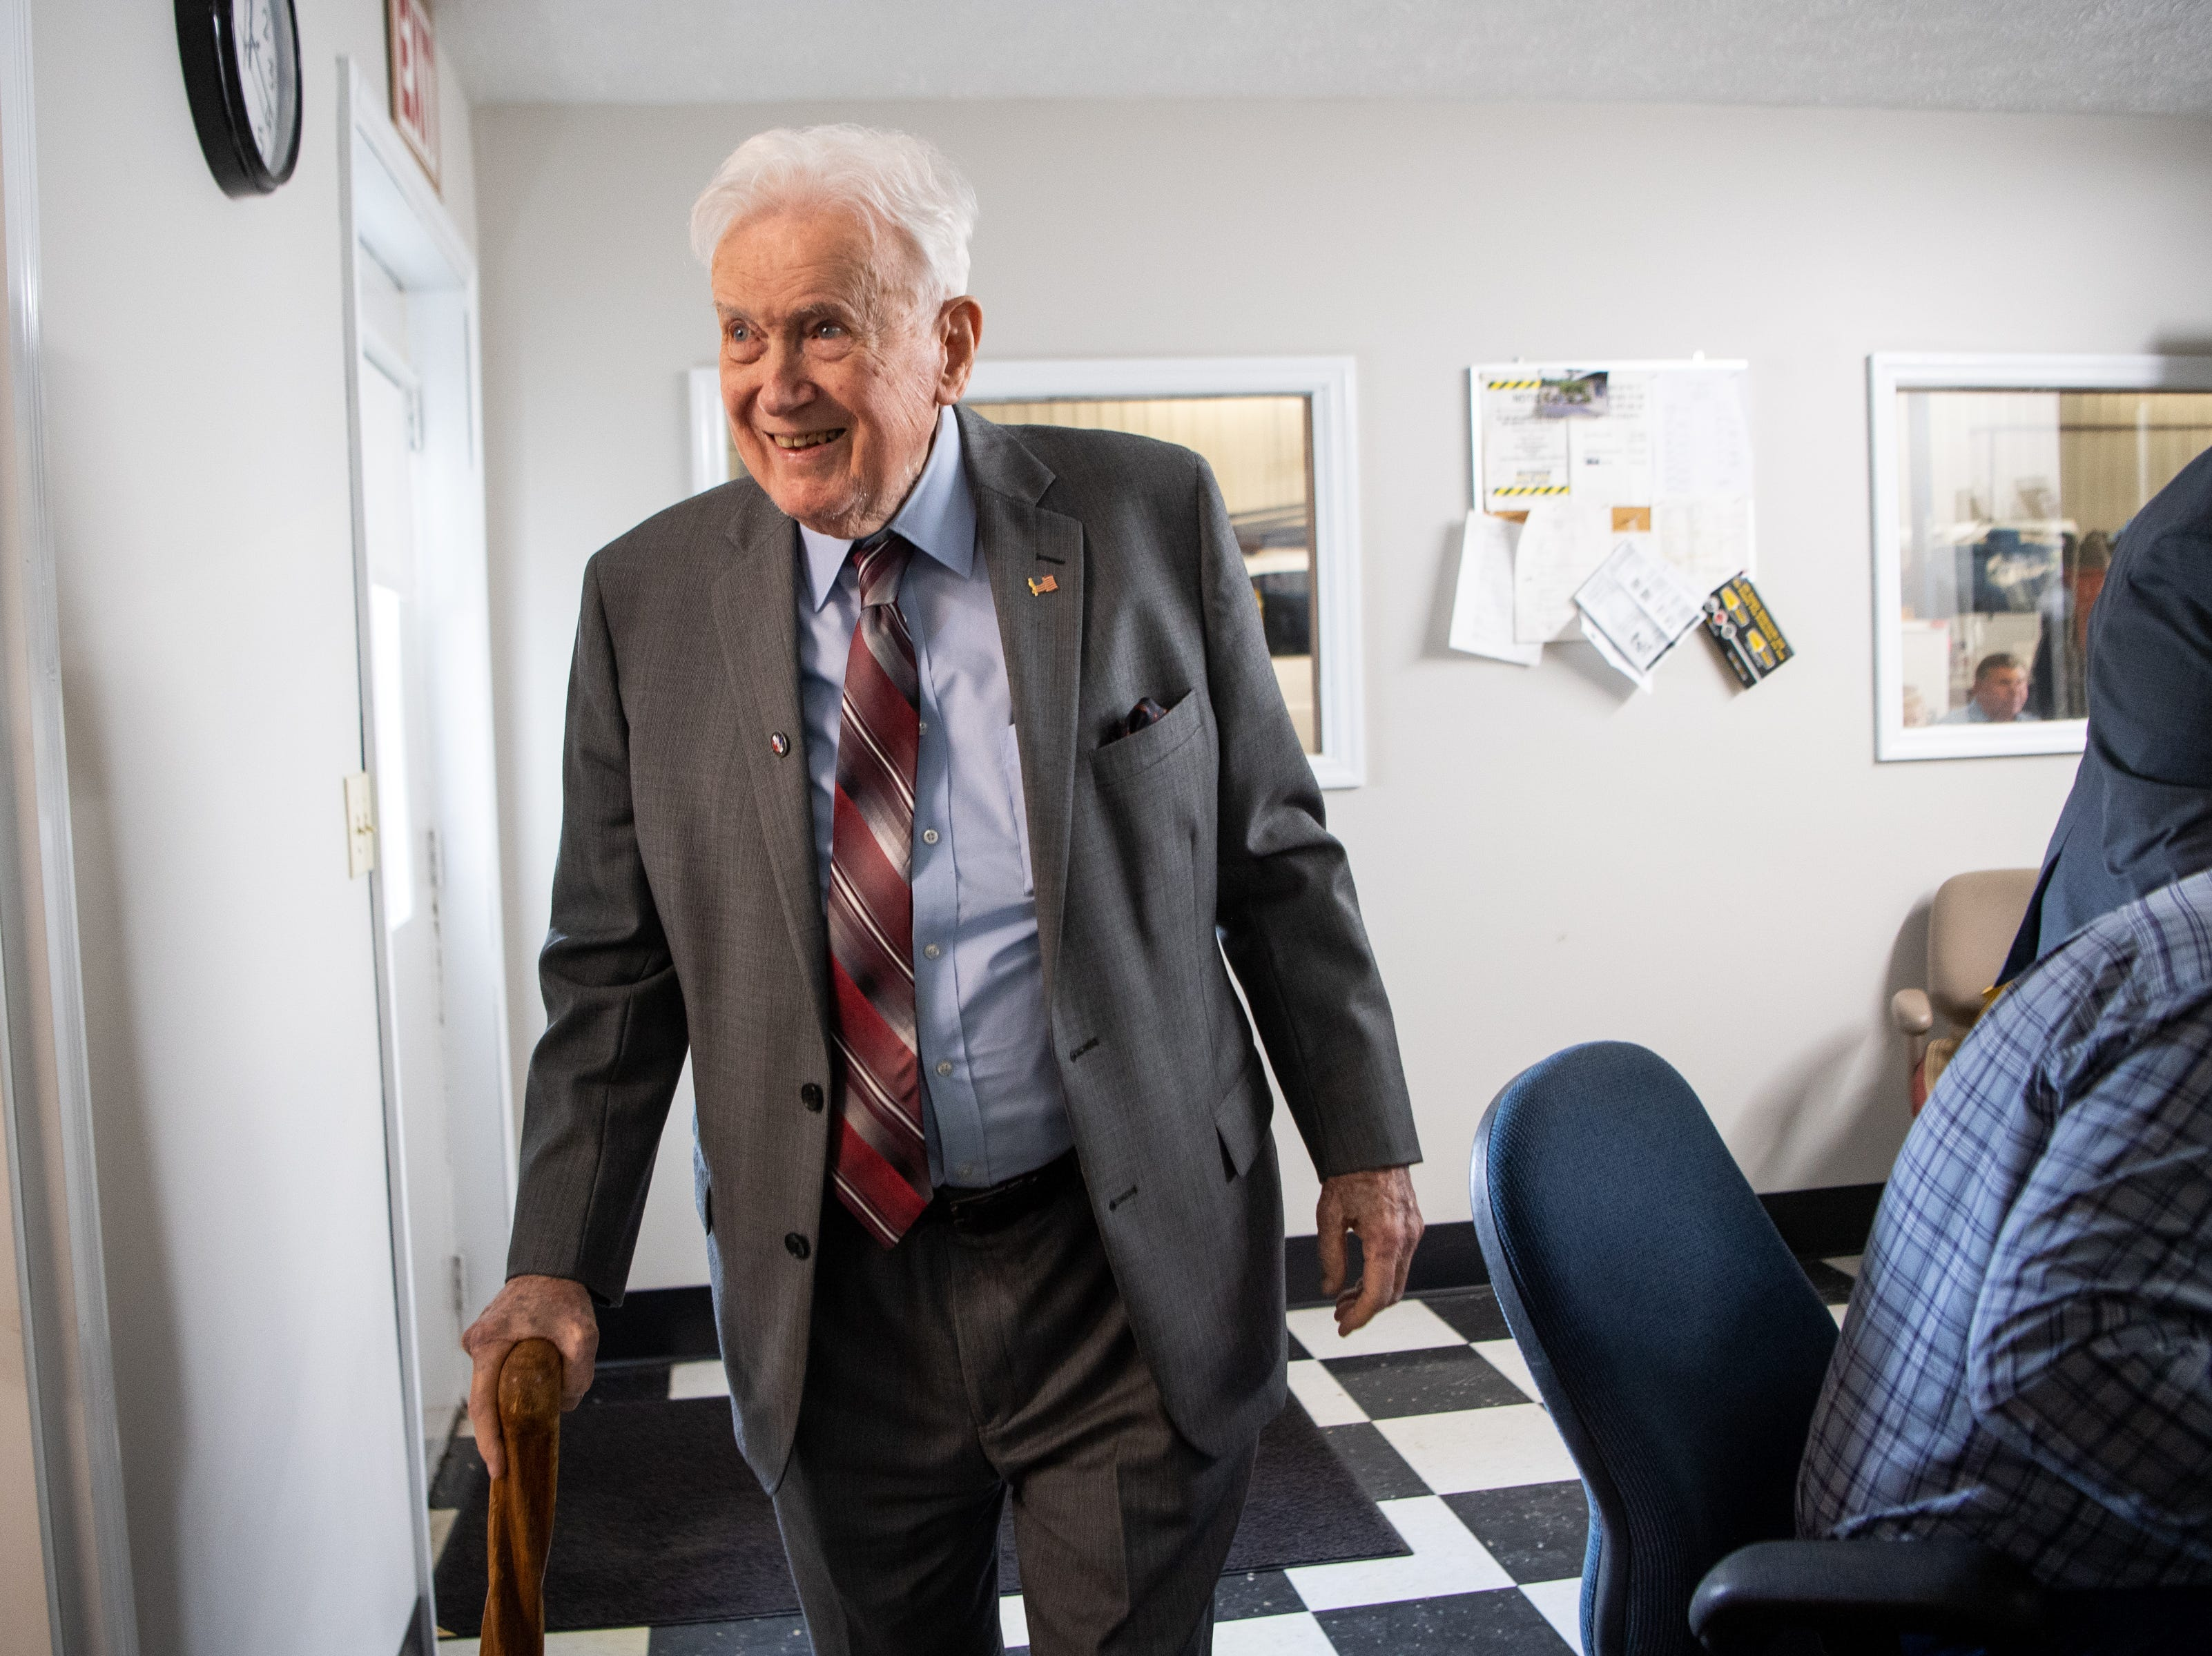 James L. Bass, 97, smiles while leaving Smith Utility District Friday, March 29, 2019, in South Carthage, Tenn. Bass served as their council for 52 years and was invited for lunch to celebrate their new building. Bass still works five days a week at the family law firm after starting there 70 years ago. Bass served in World War II, went back to school to pursue a law degree and graduated Vanderbilt University School of Law in 1949.